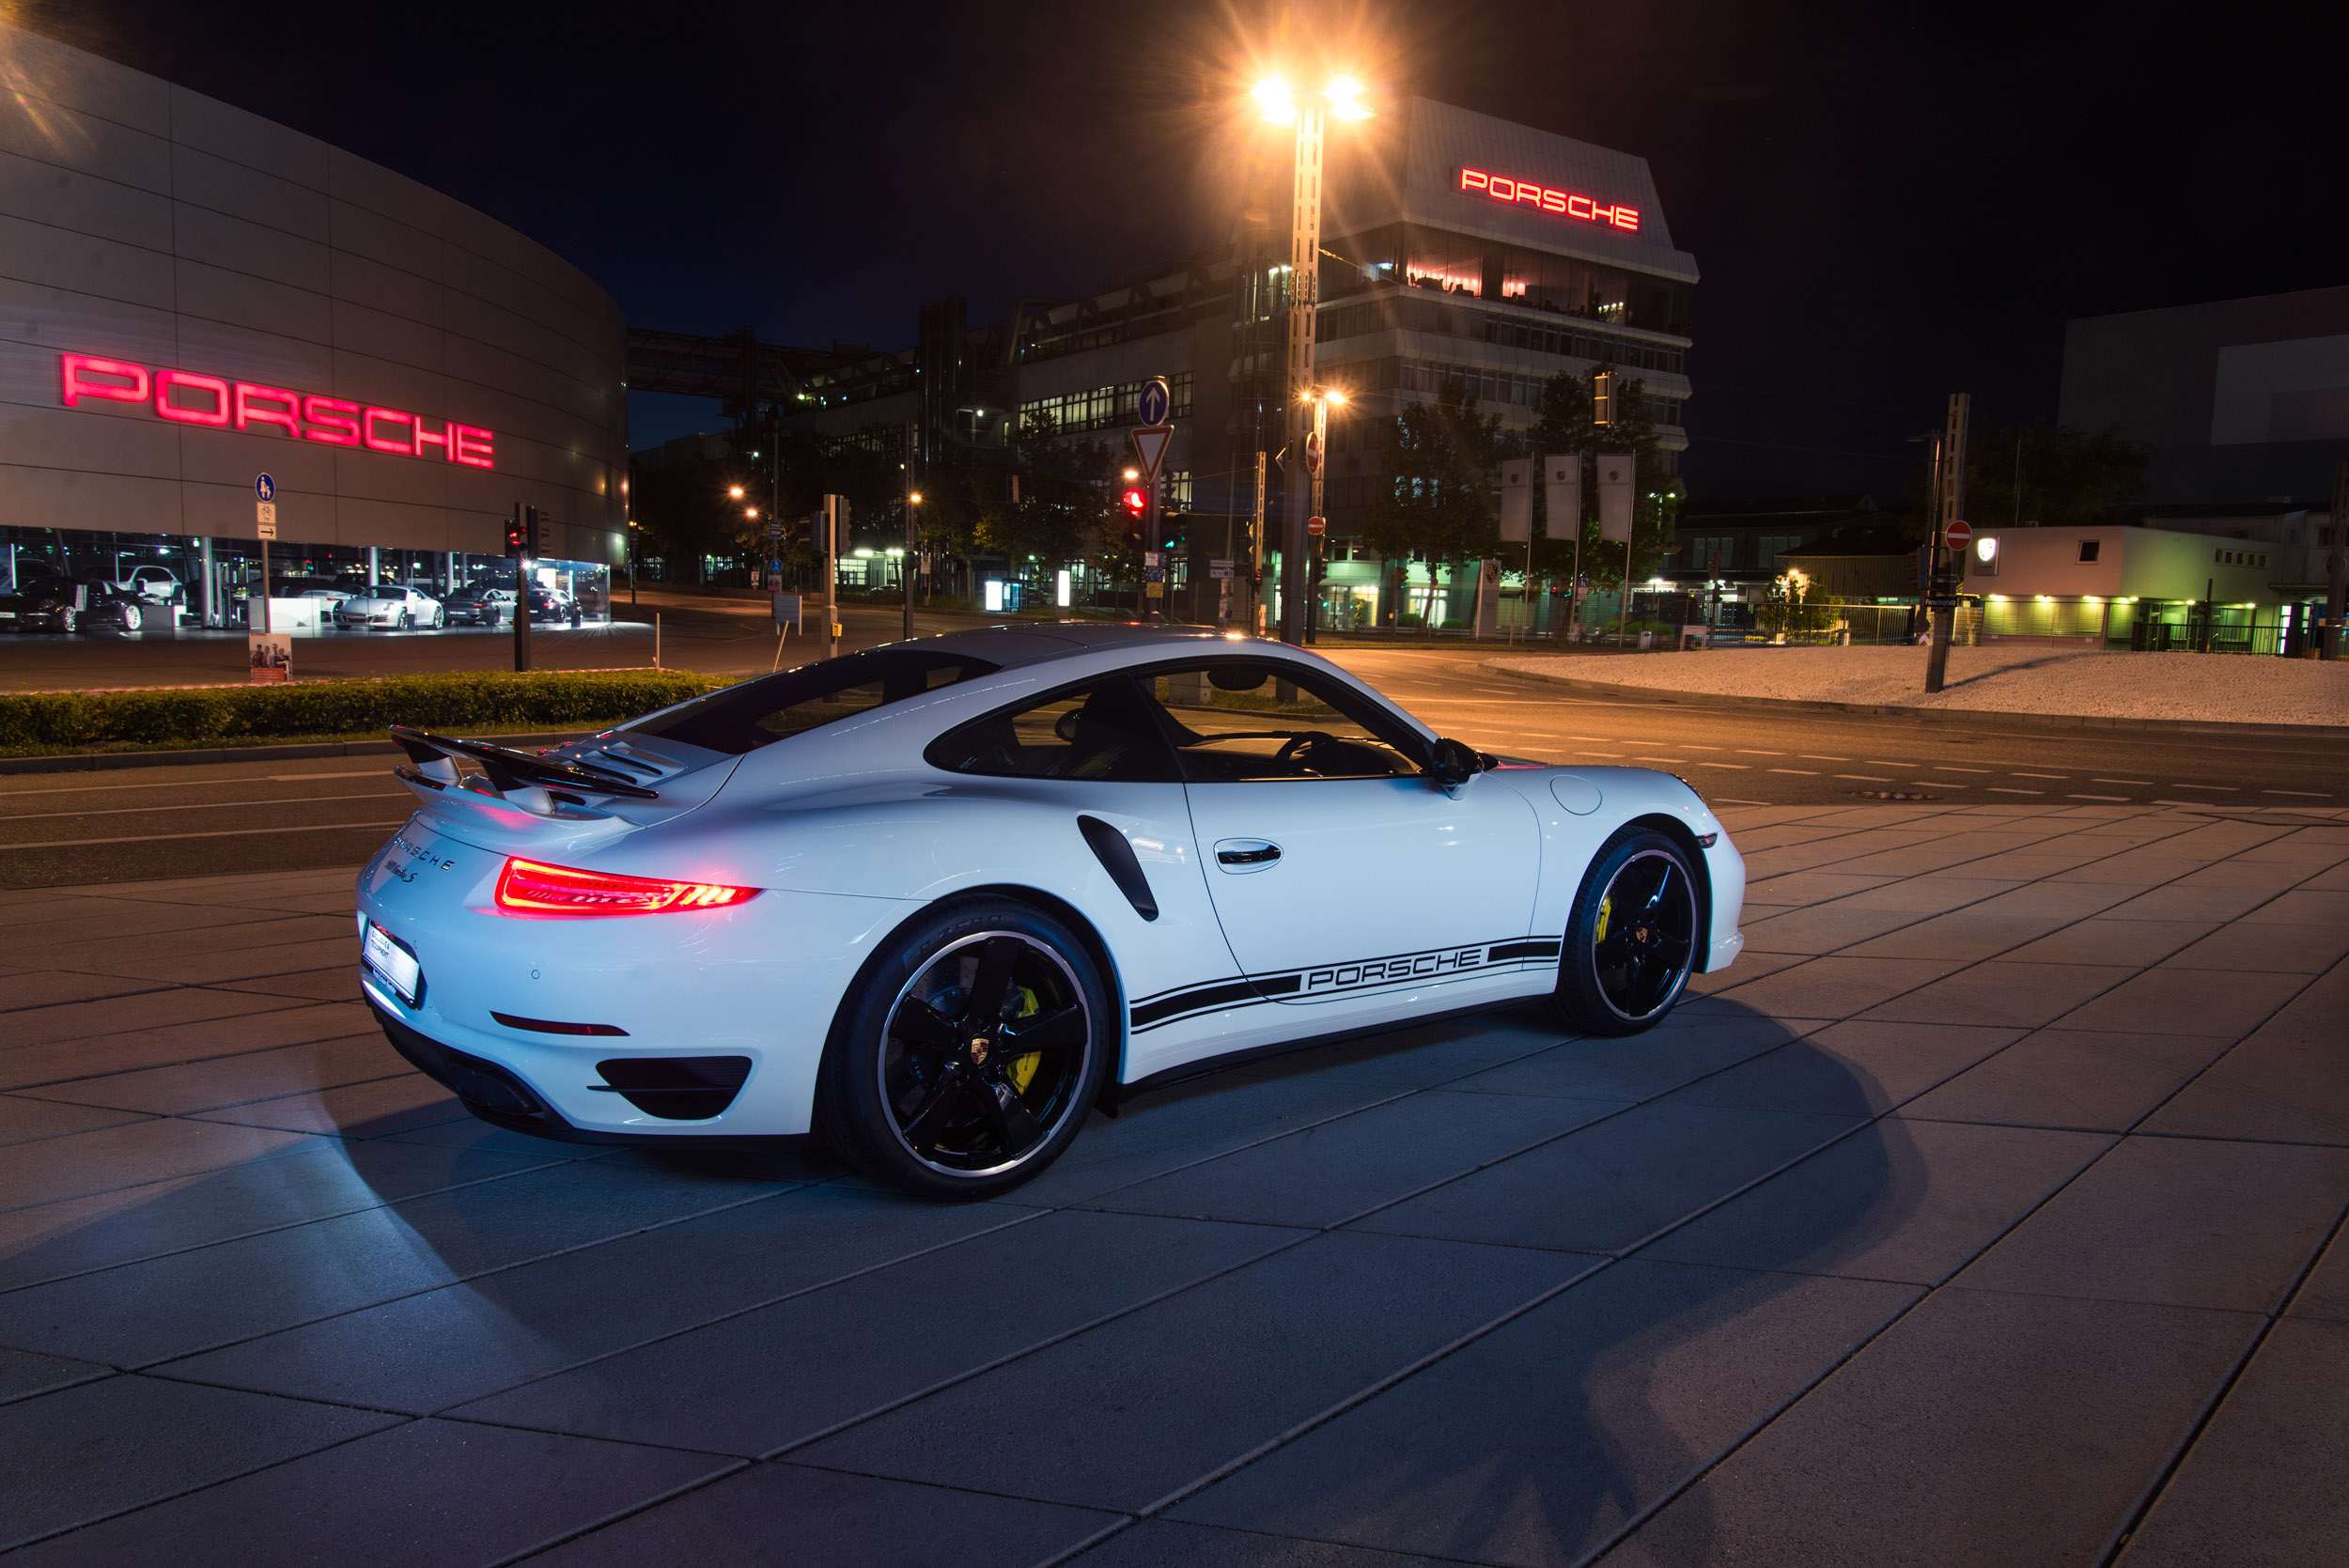 2014 porsche 911 turbo s exclusive gb edition